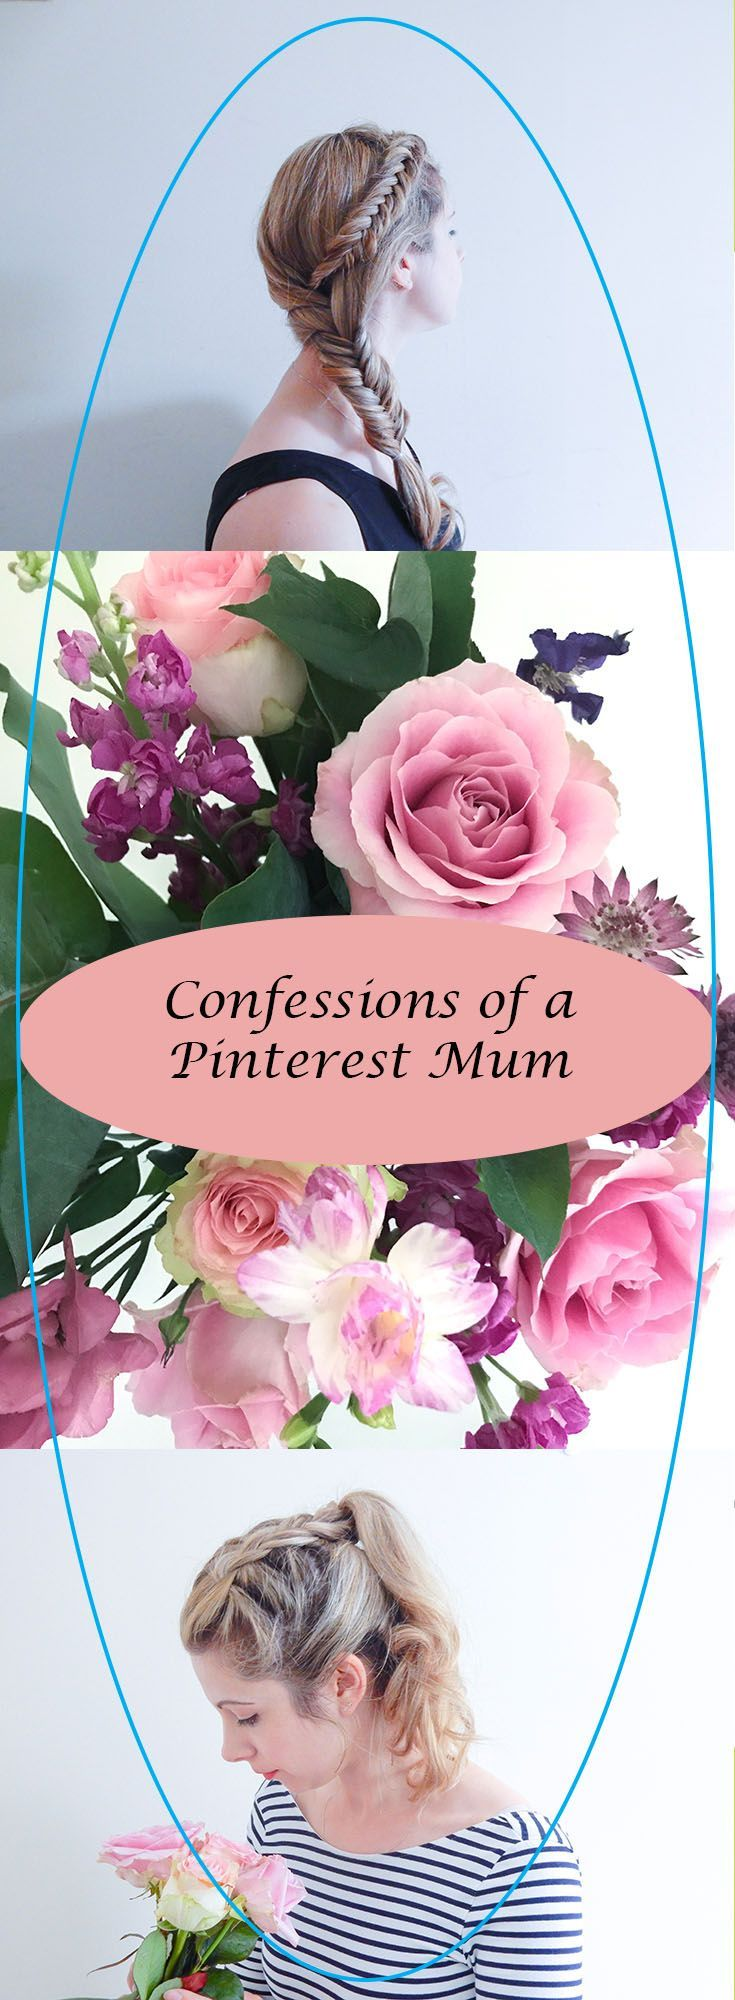 I am a Pinterest Mum. Here are my confessions in between all the cooking, baking, sewing and organising a household.